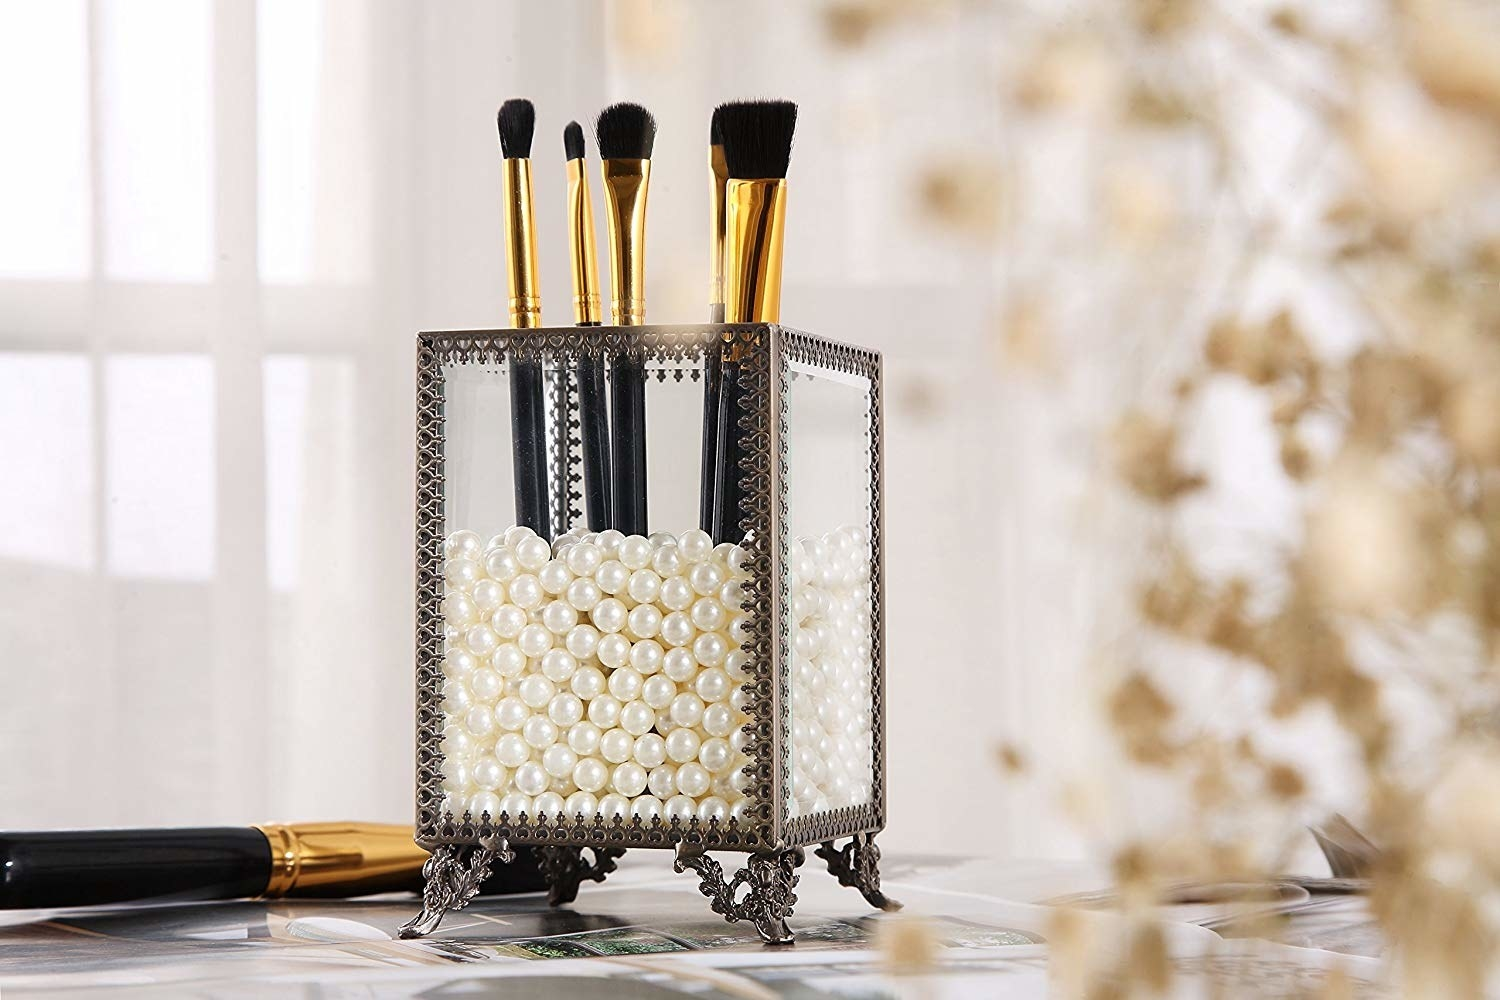 Rectangular glass box with ornate legs and edges in victorian style with faux pearls on inside of box, holding up makeup brushes